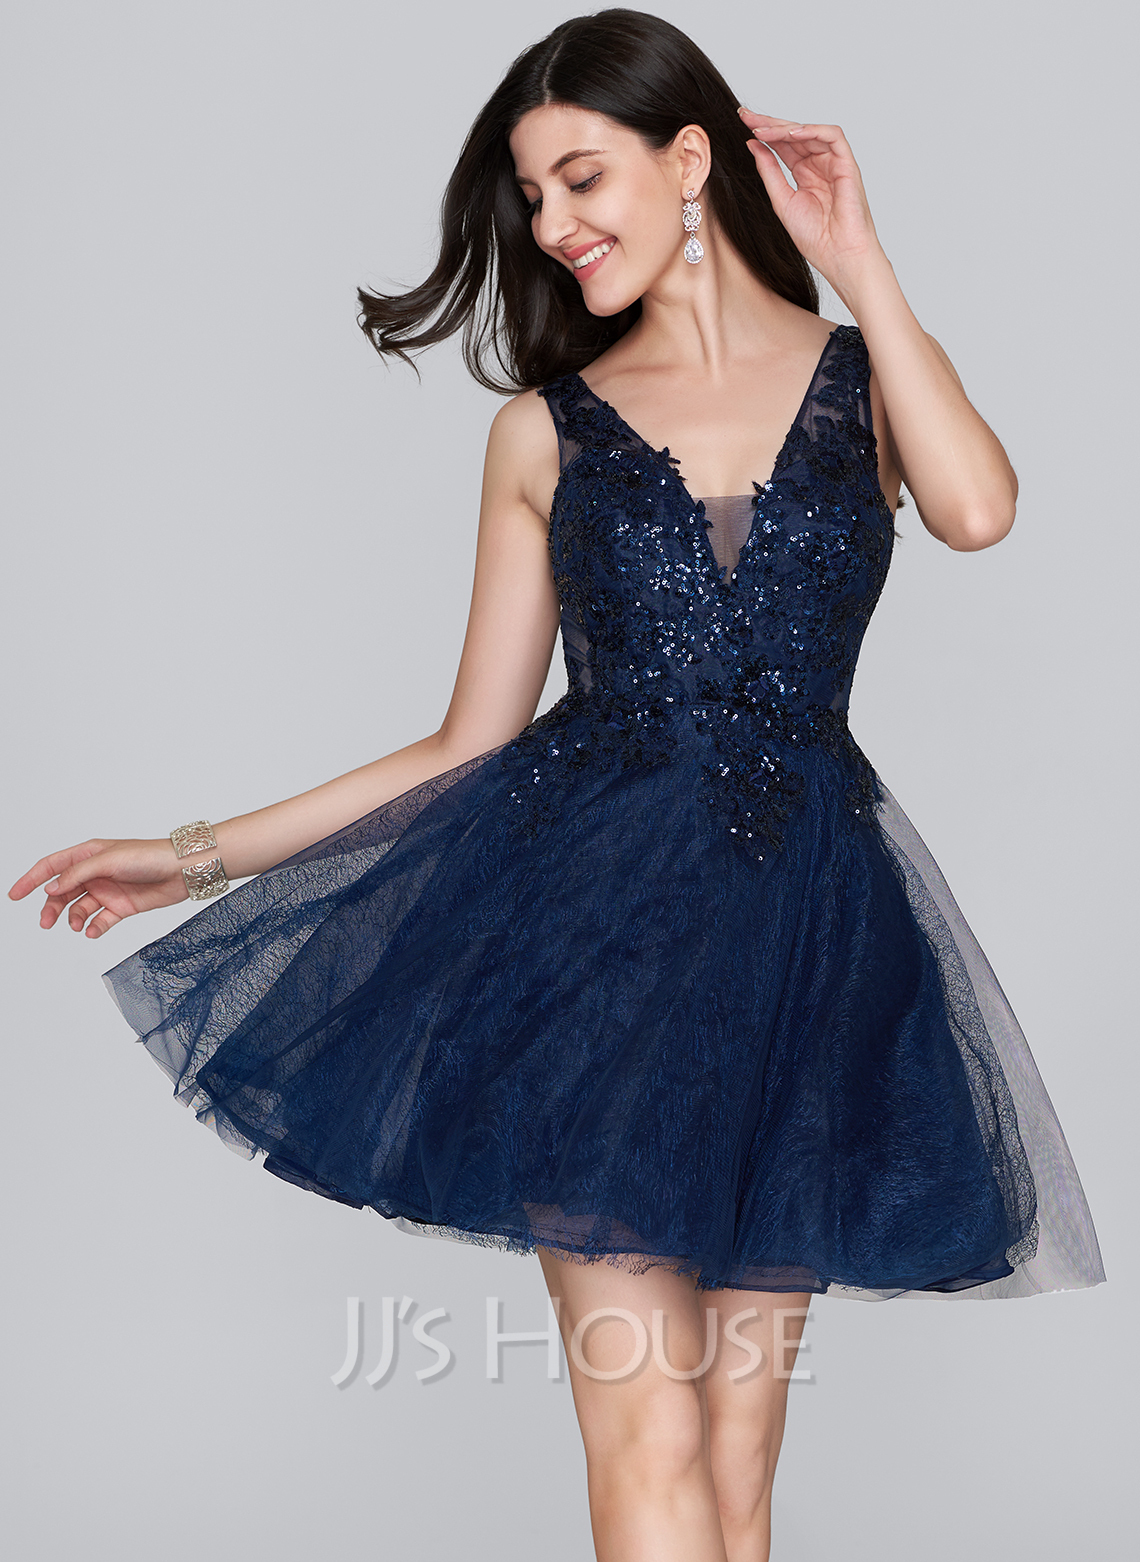 f3e62de9cda6 A-Line/Princess V-neck Short/Mini Tulle Homecoming Dress With Sequins. Loading  zoom